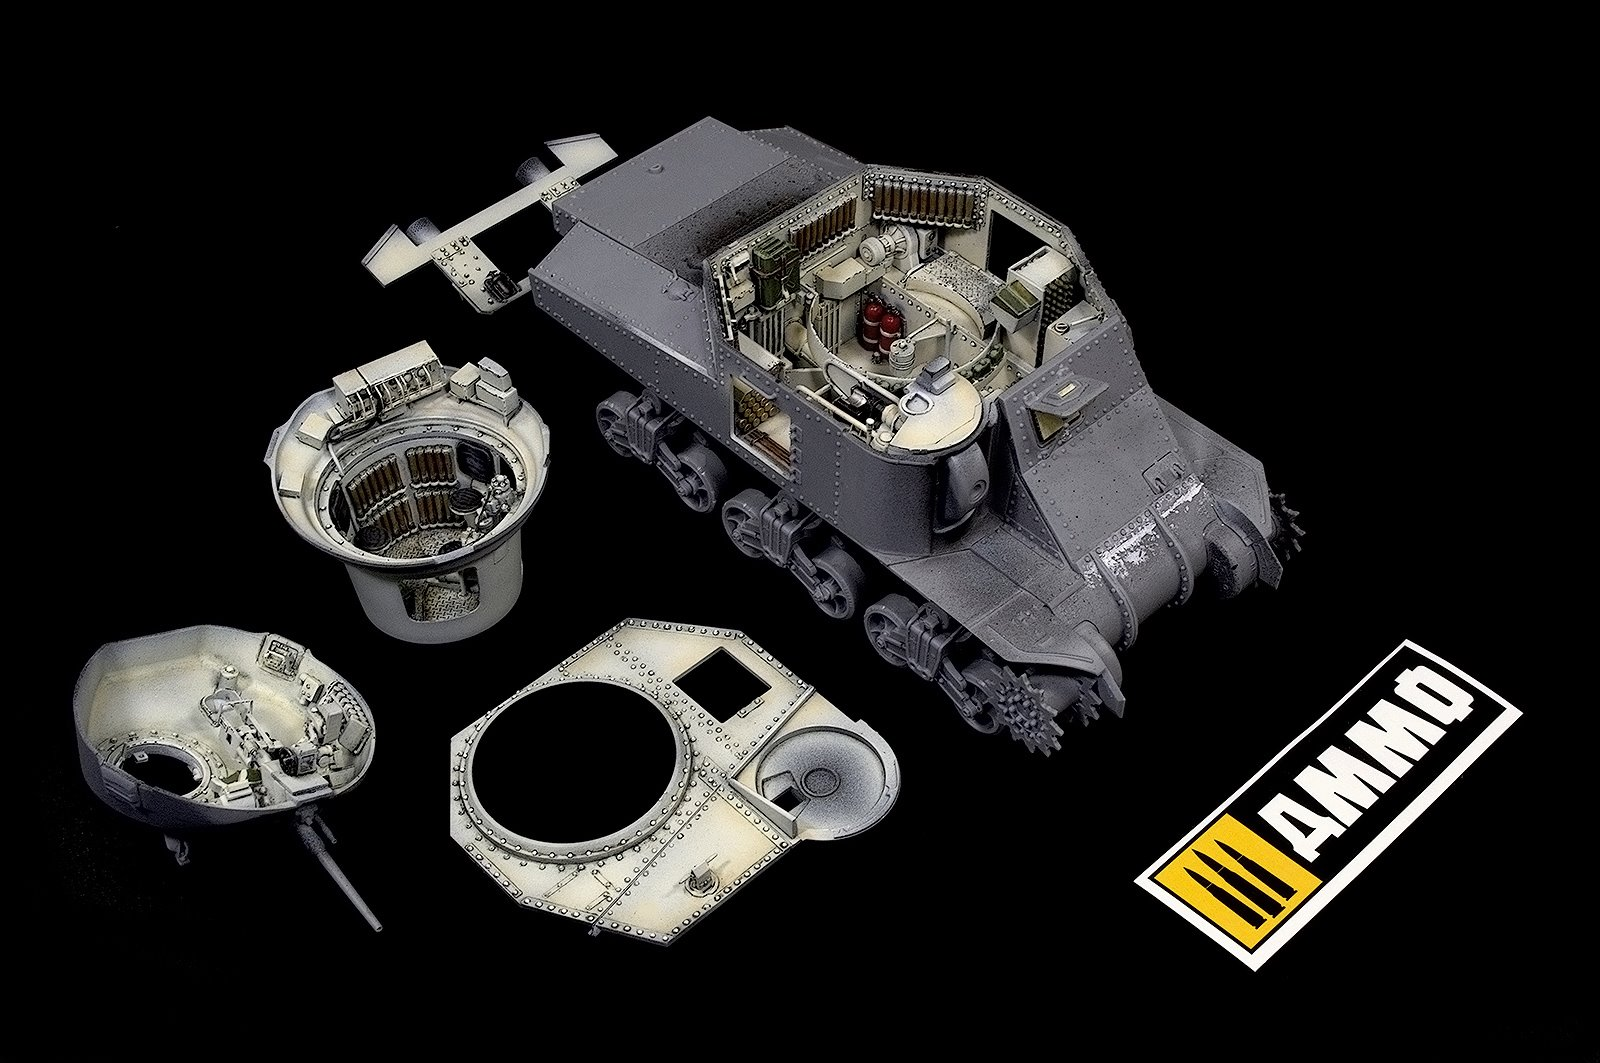 New Build Up Photos: 35217 GRANT Mk.I INTERIOR KIT + Igor Sydorenko Part 2